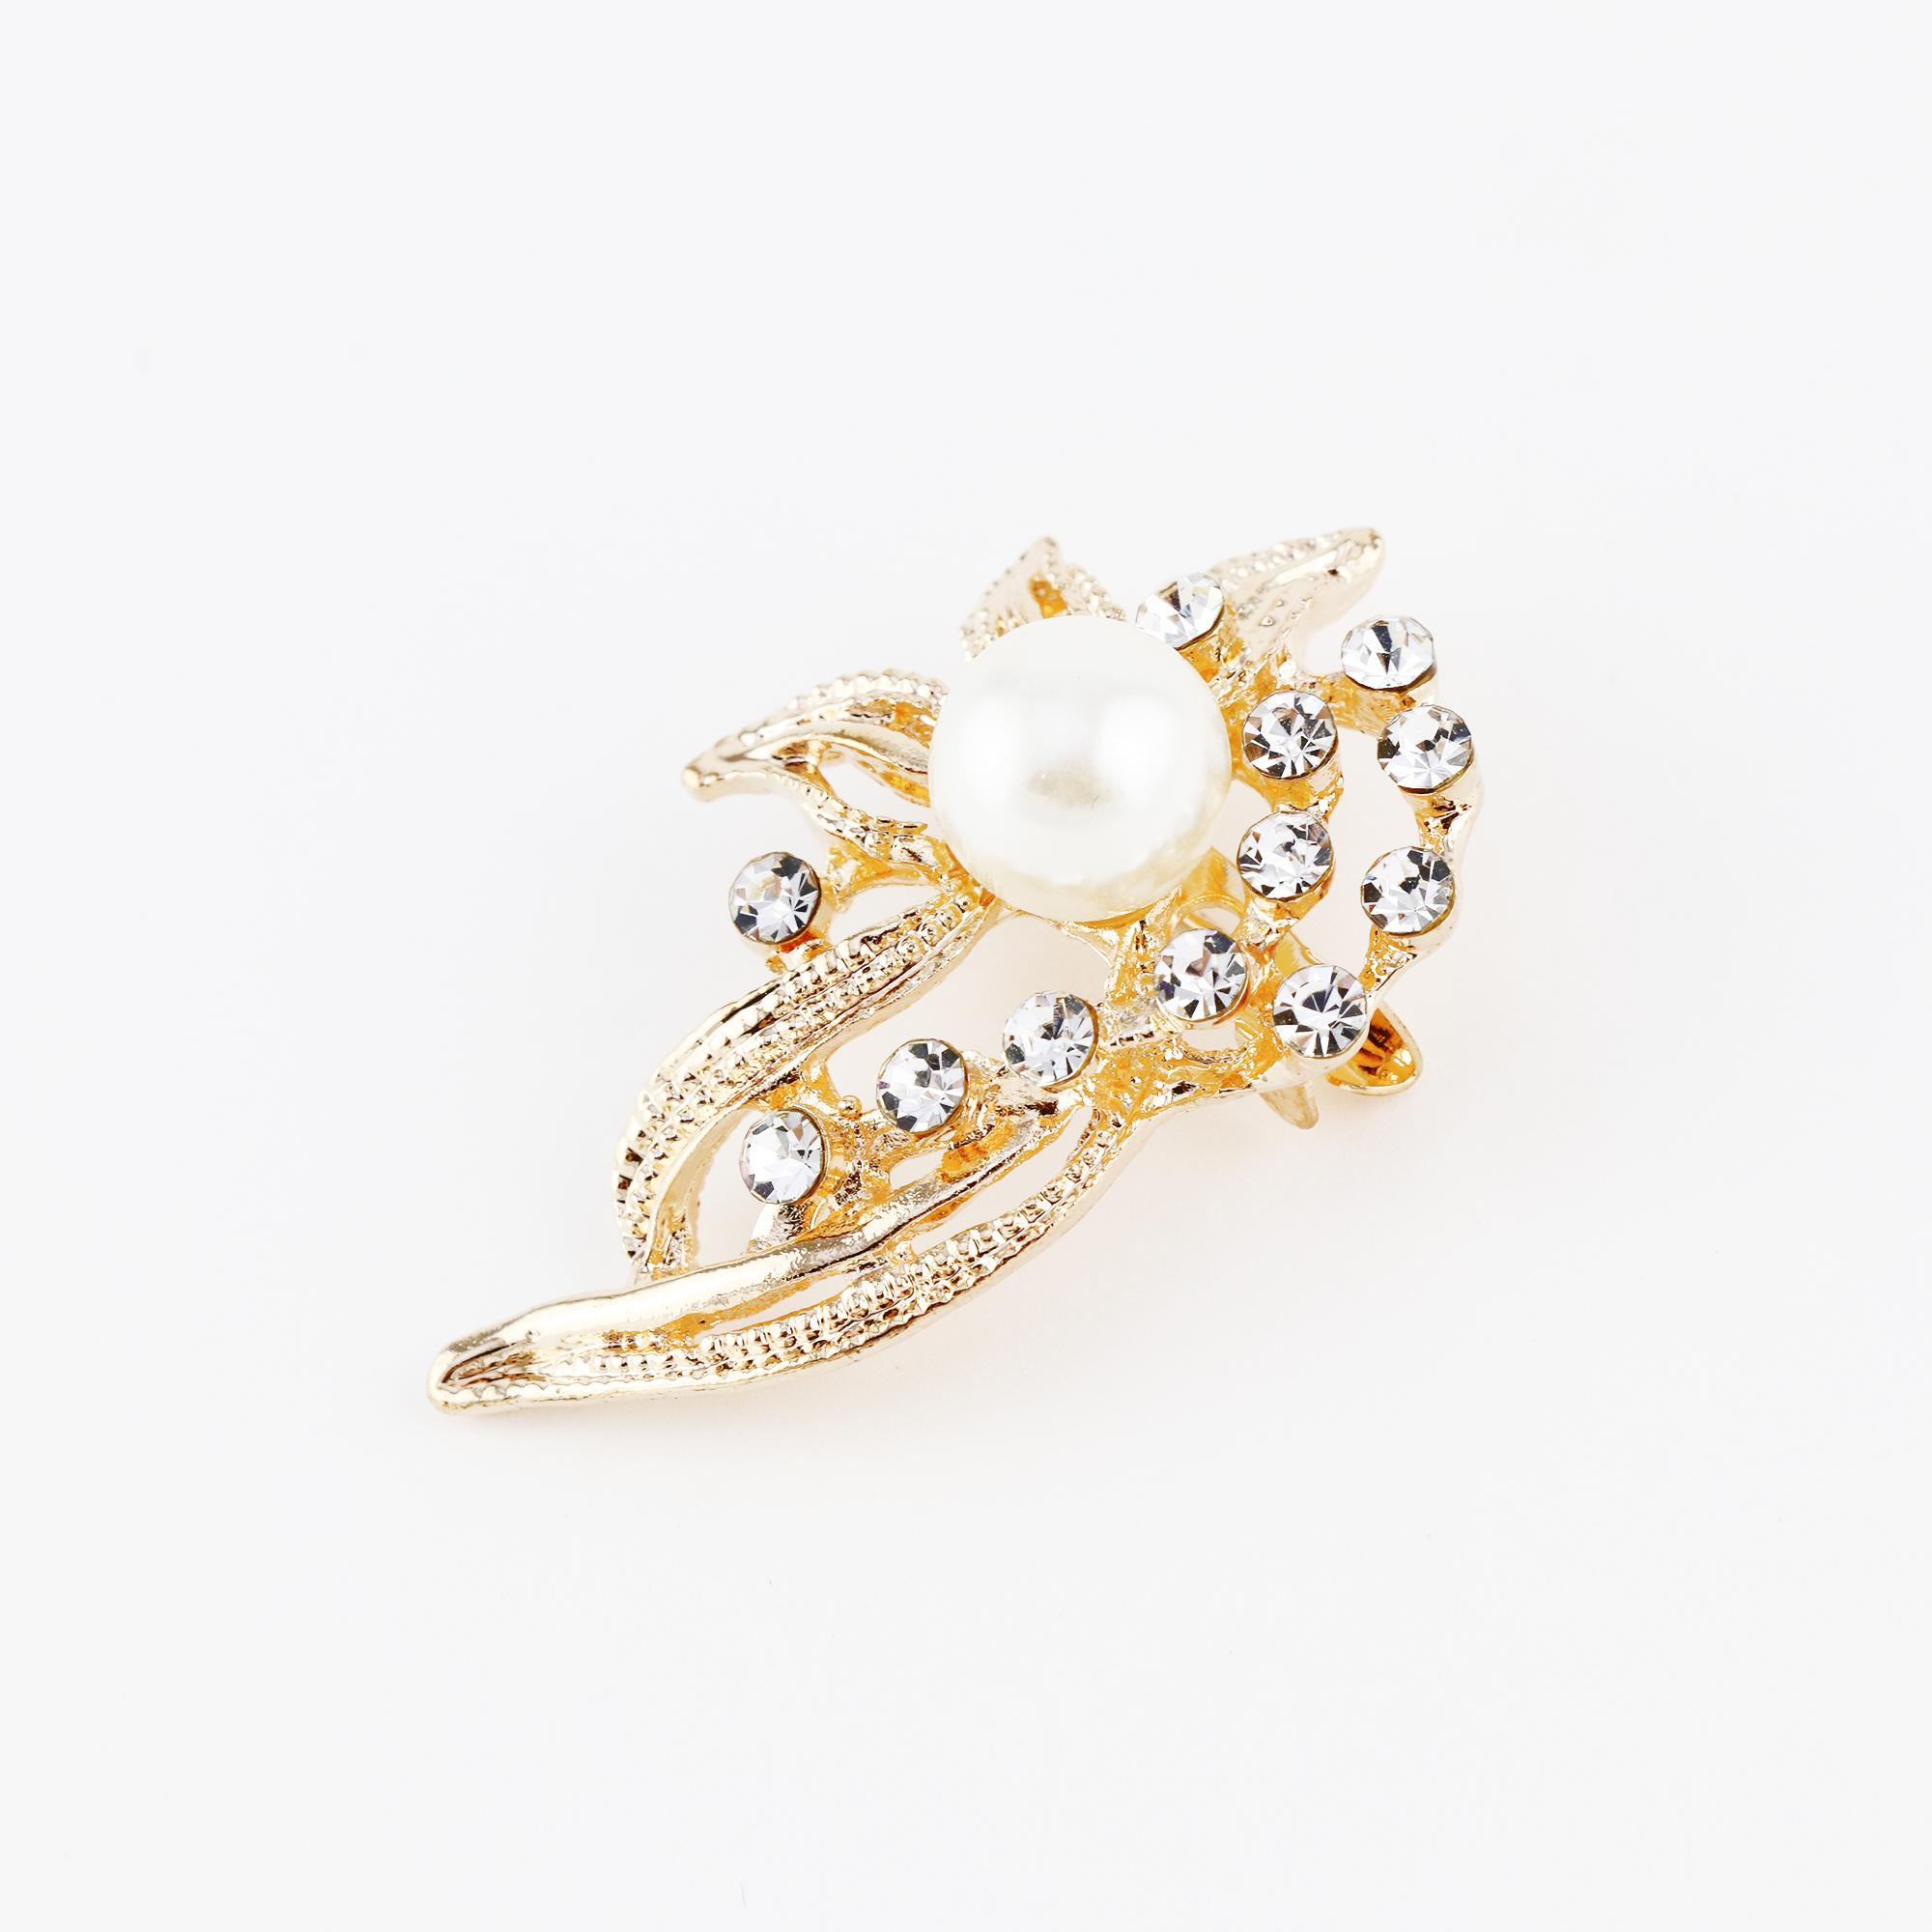 9576a5845 Brooches for sale - Womens Brooches online brands, prices & reviews ...